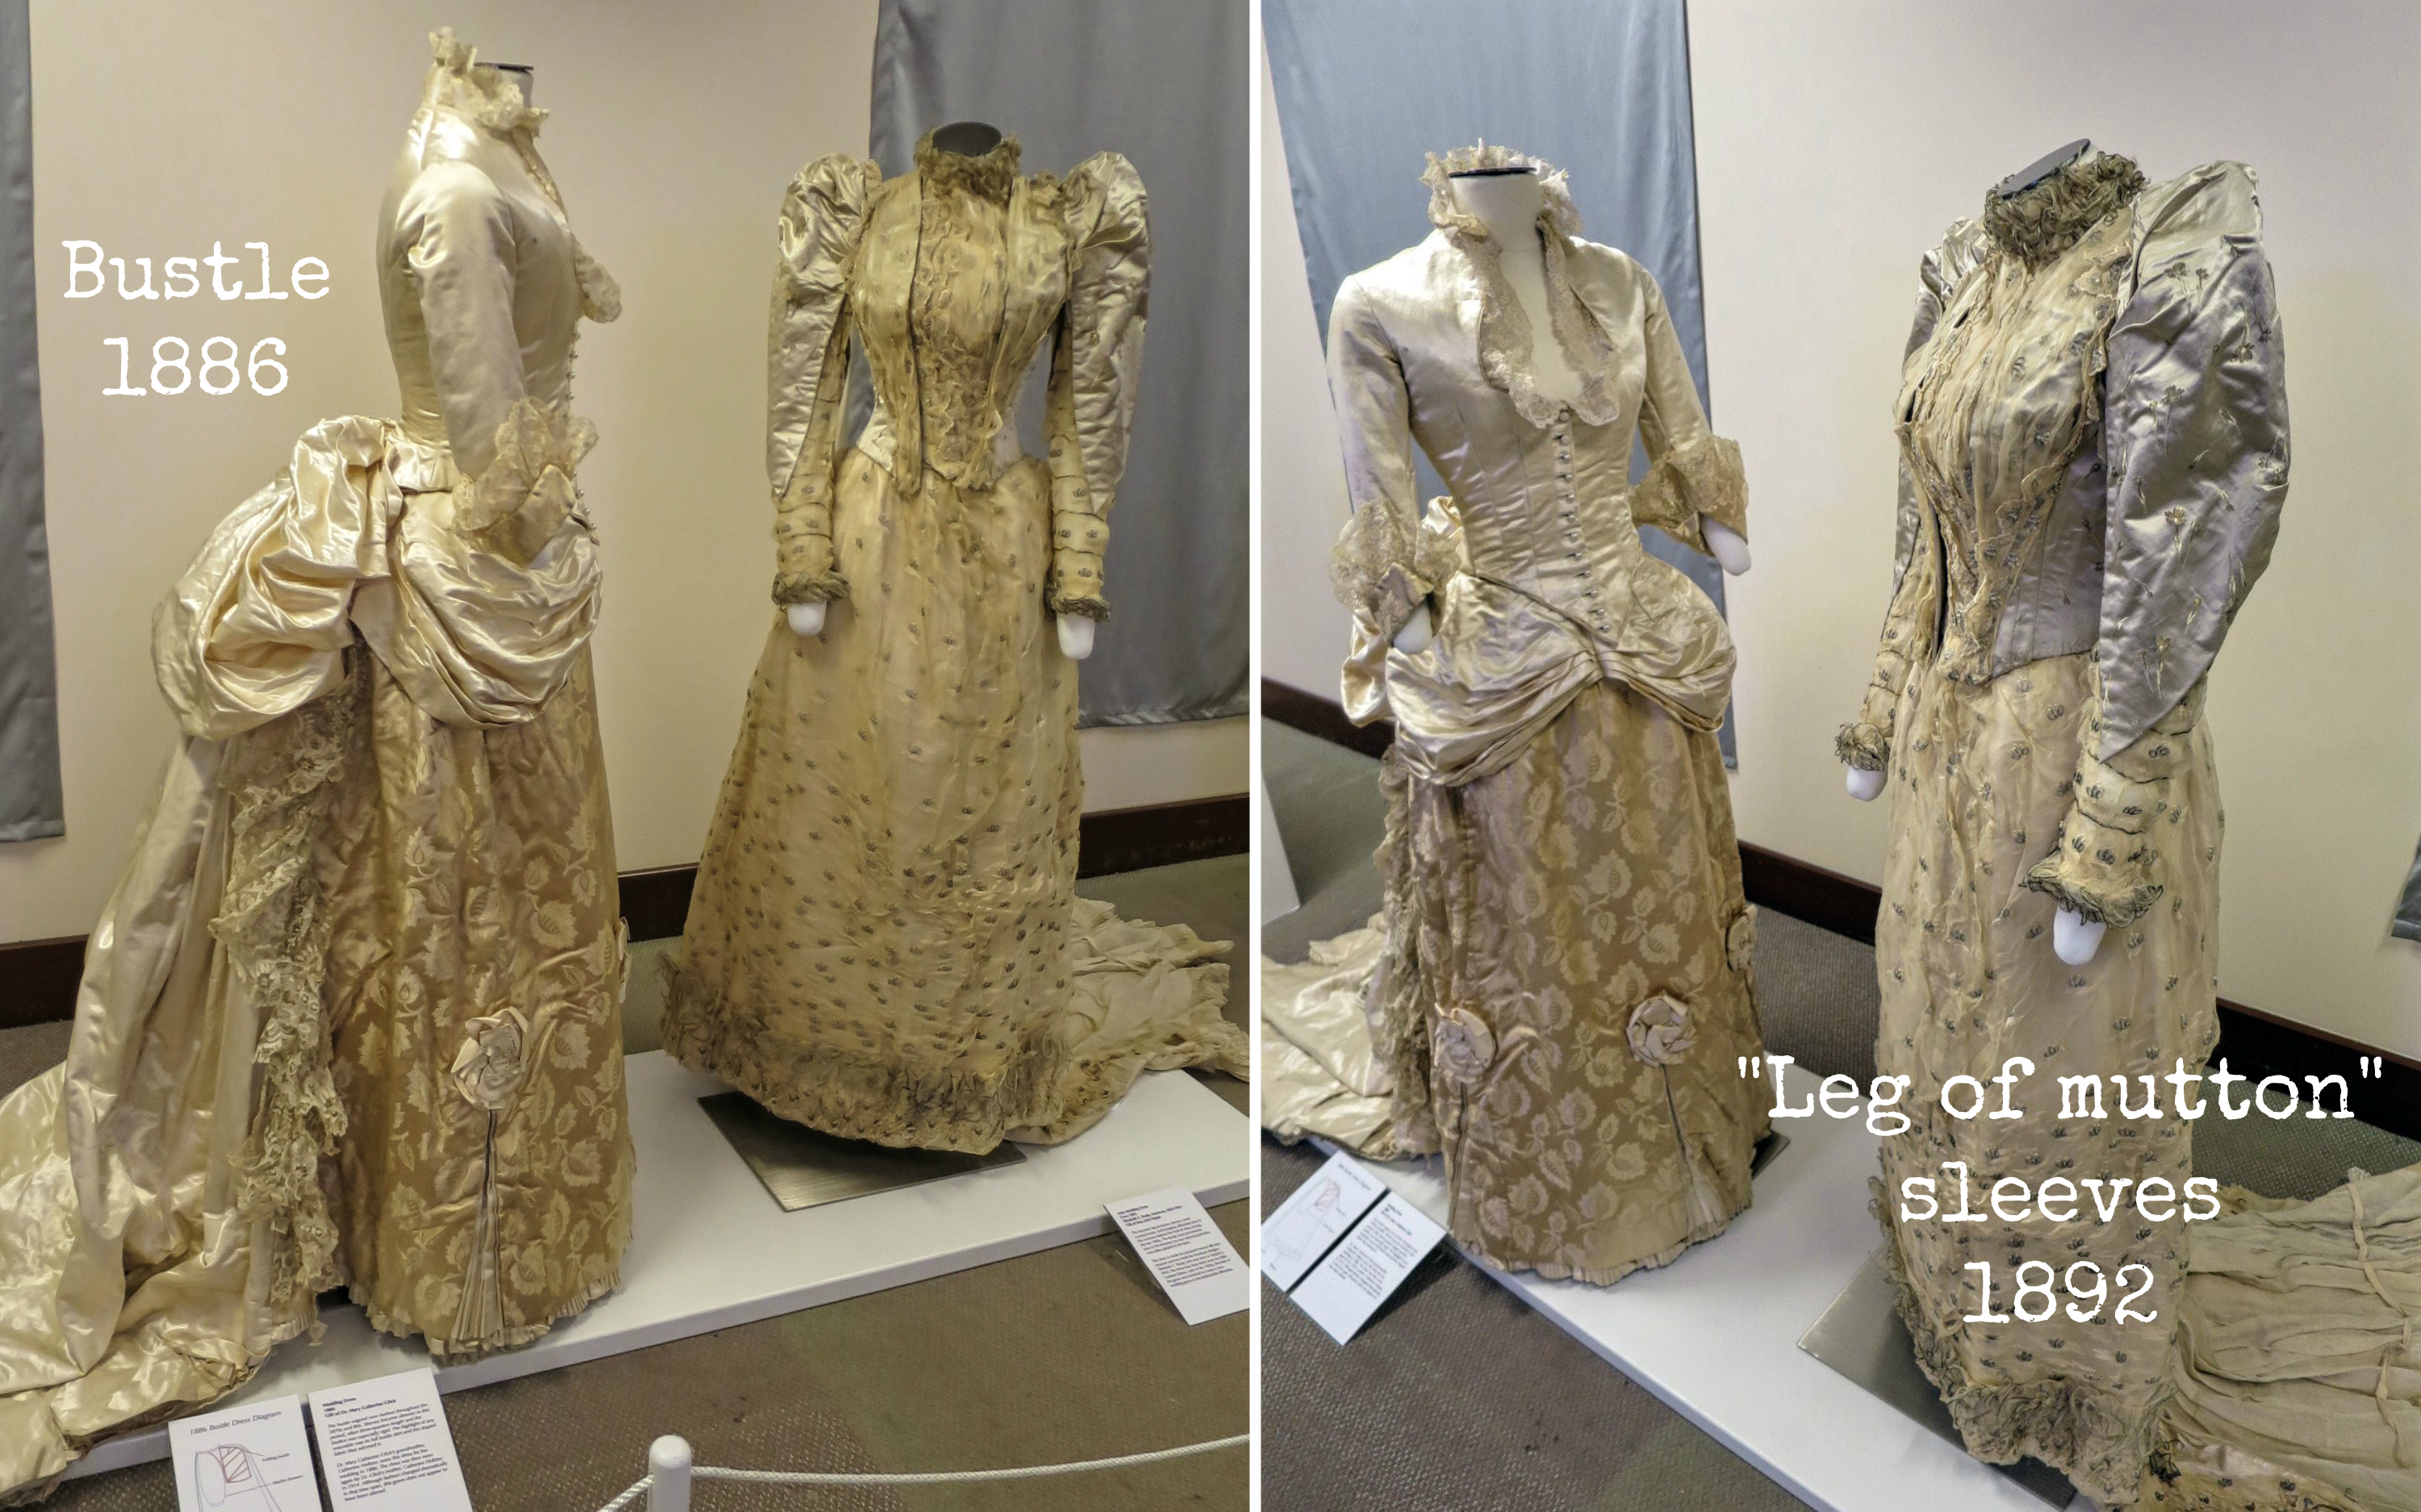 EastFallsLocal collage historic wedding dresses 1800s